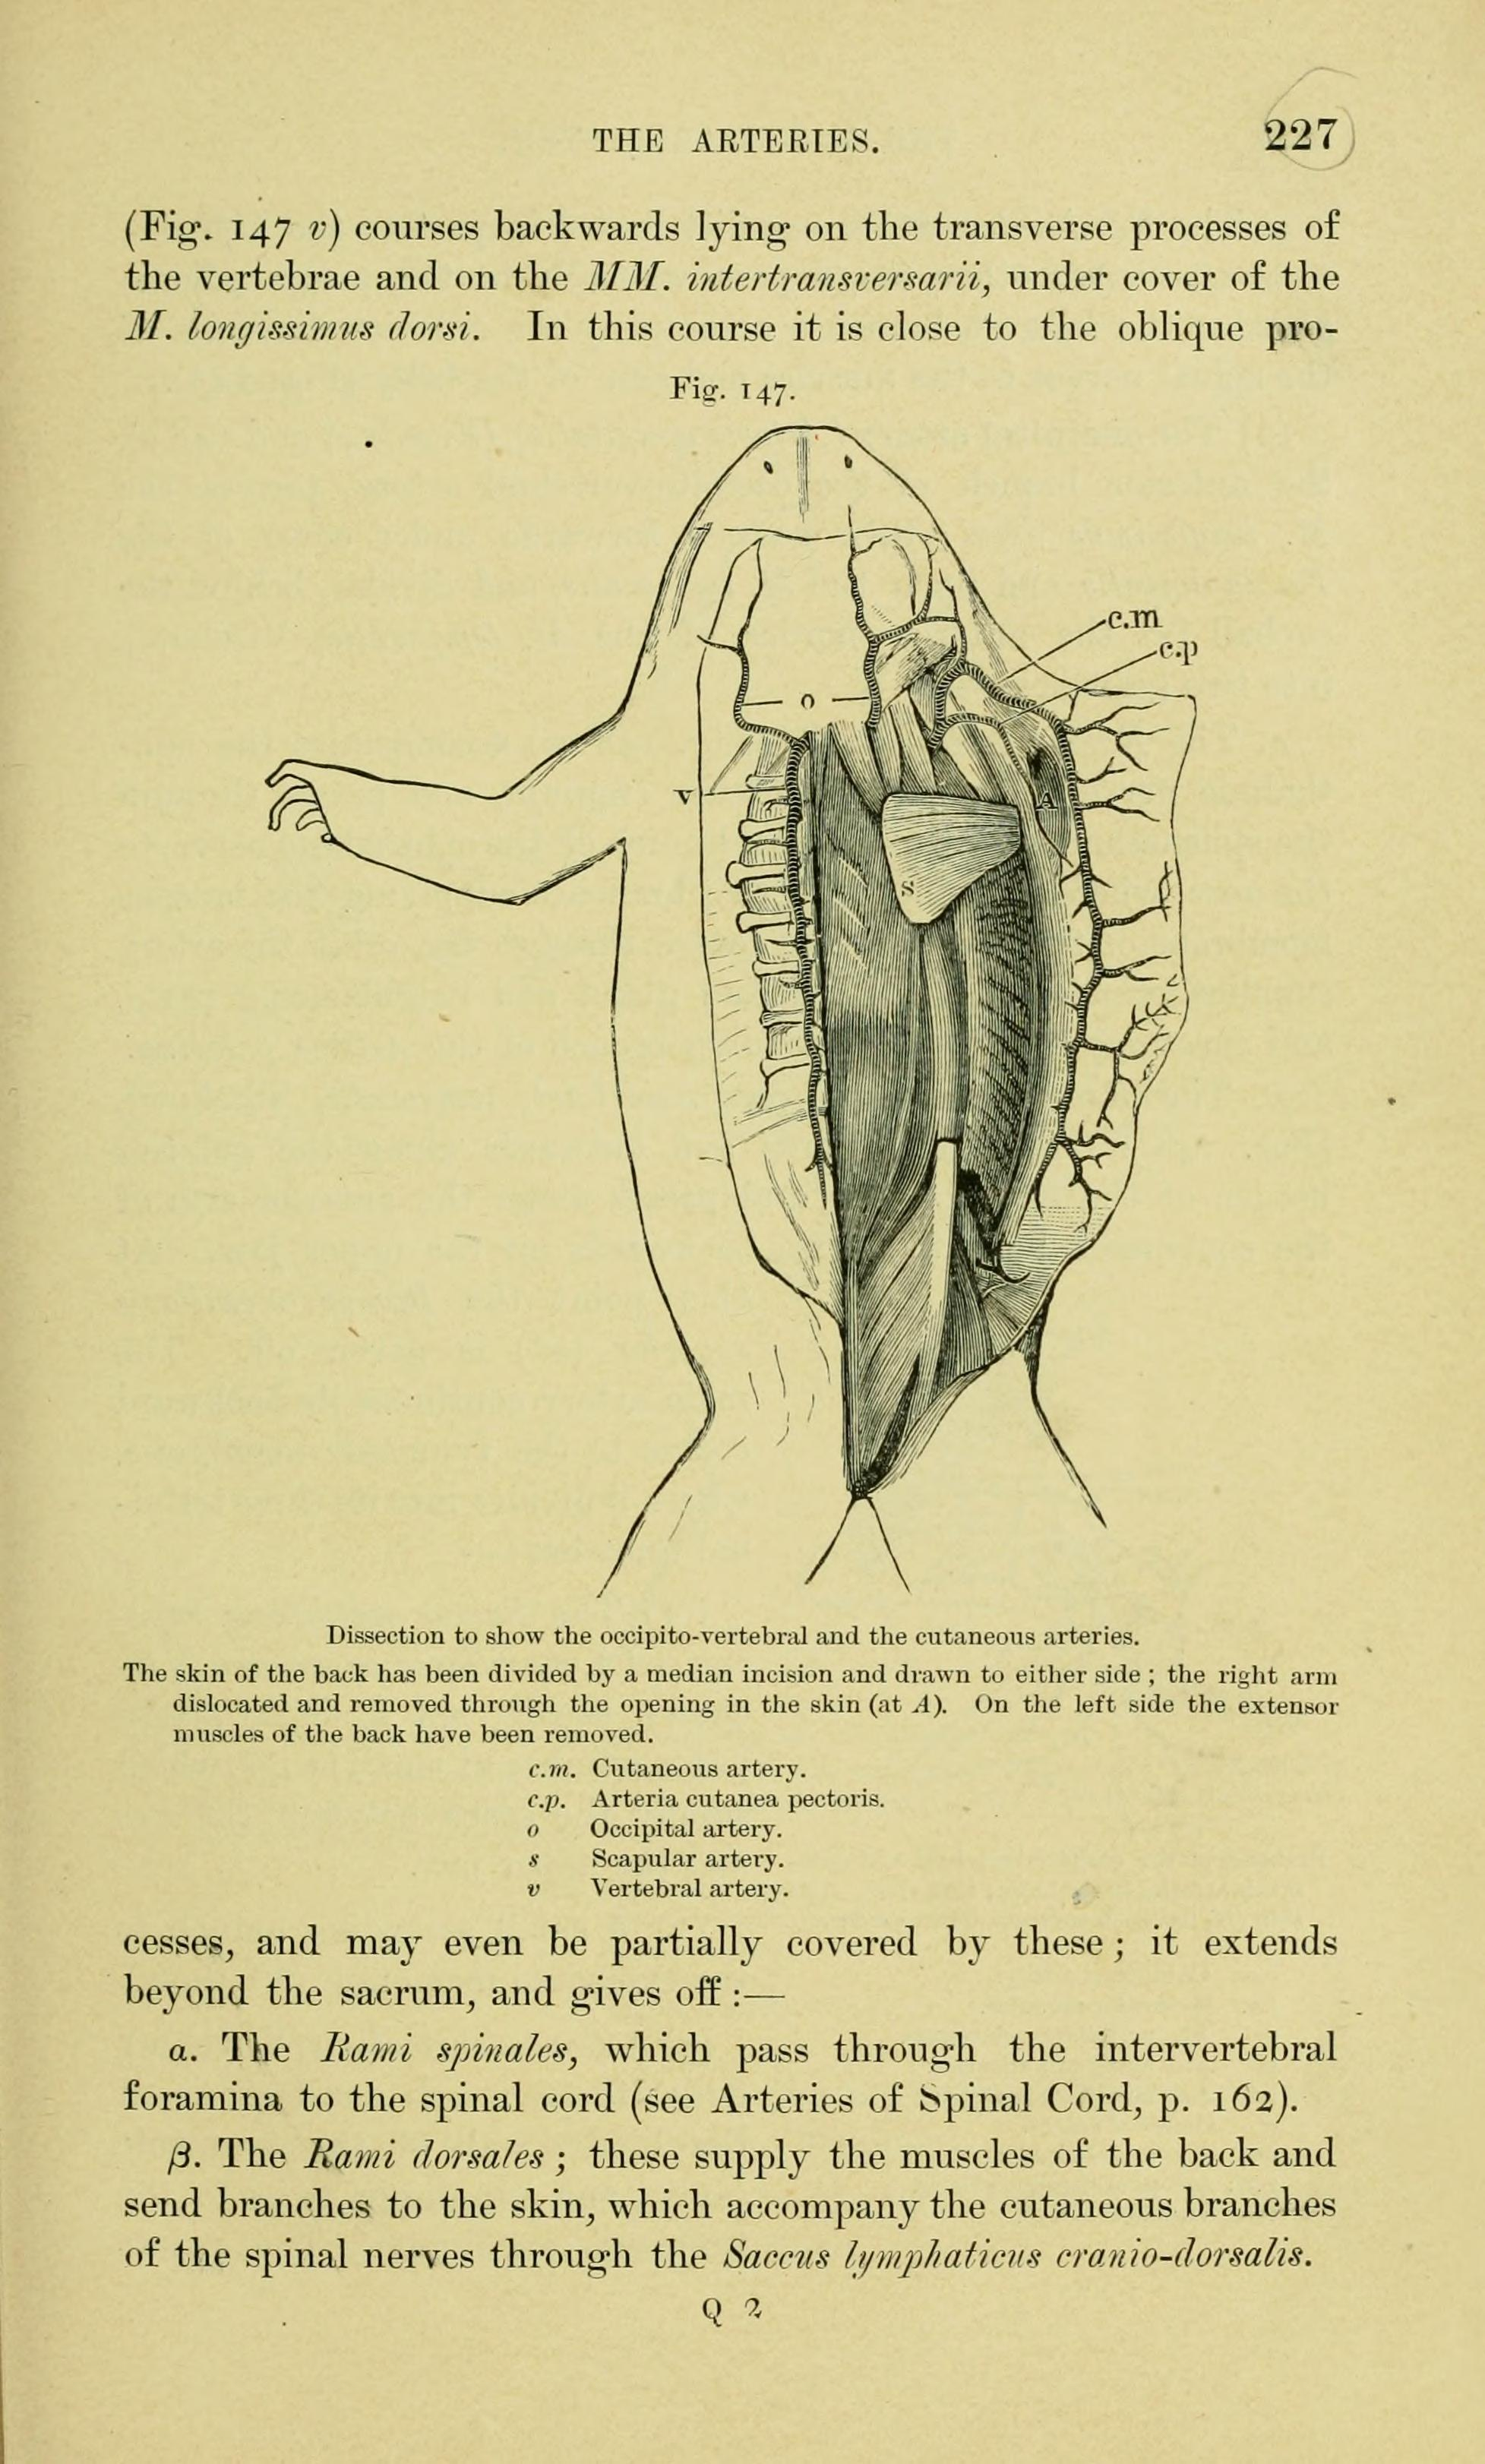 Filethe Anatomy Of The Frog Page 227 Fig 147 Bhl7555009g